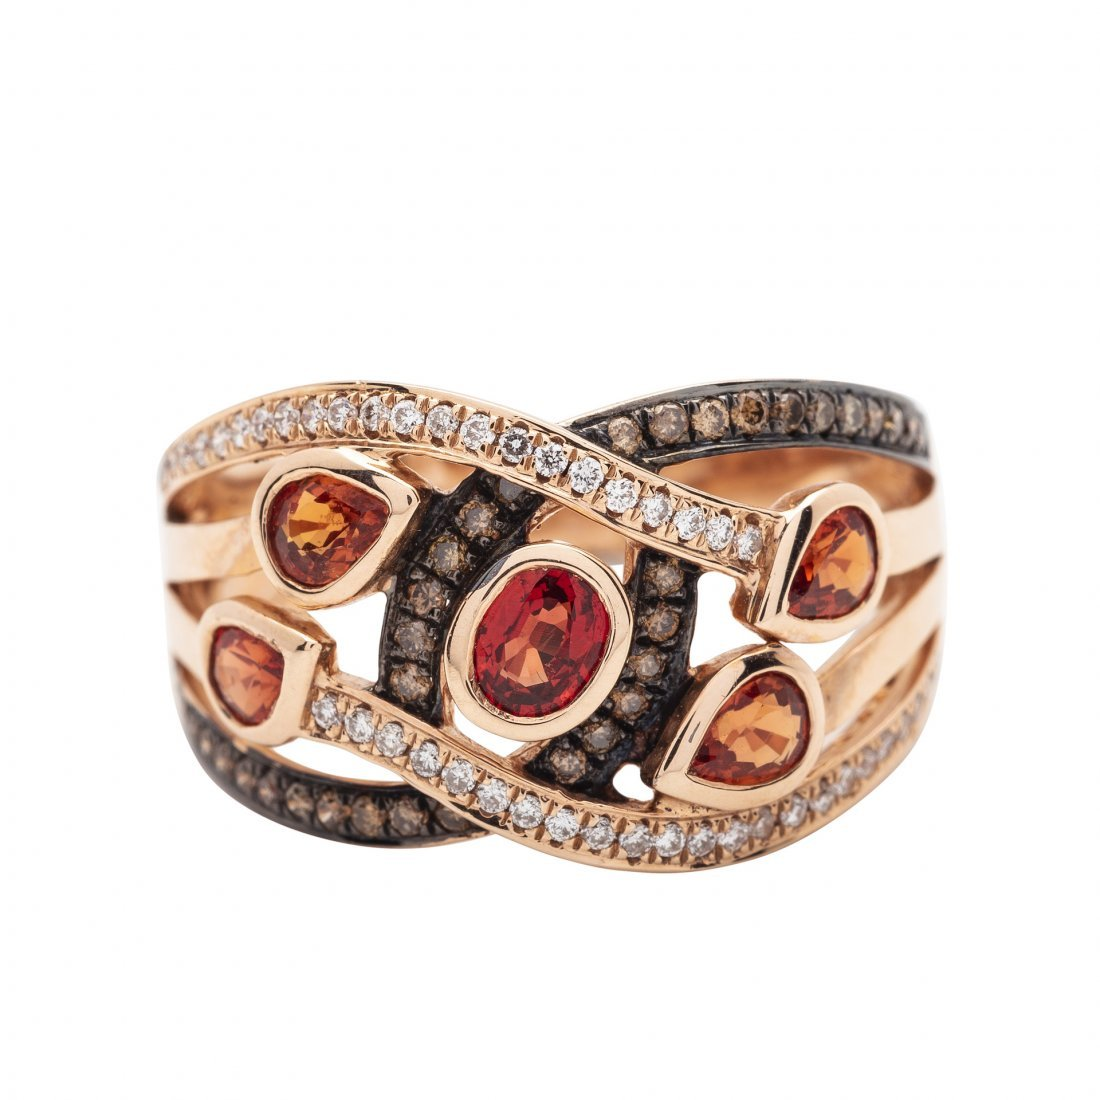 14KT White Gold, Colored Stone and Diamond Ring